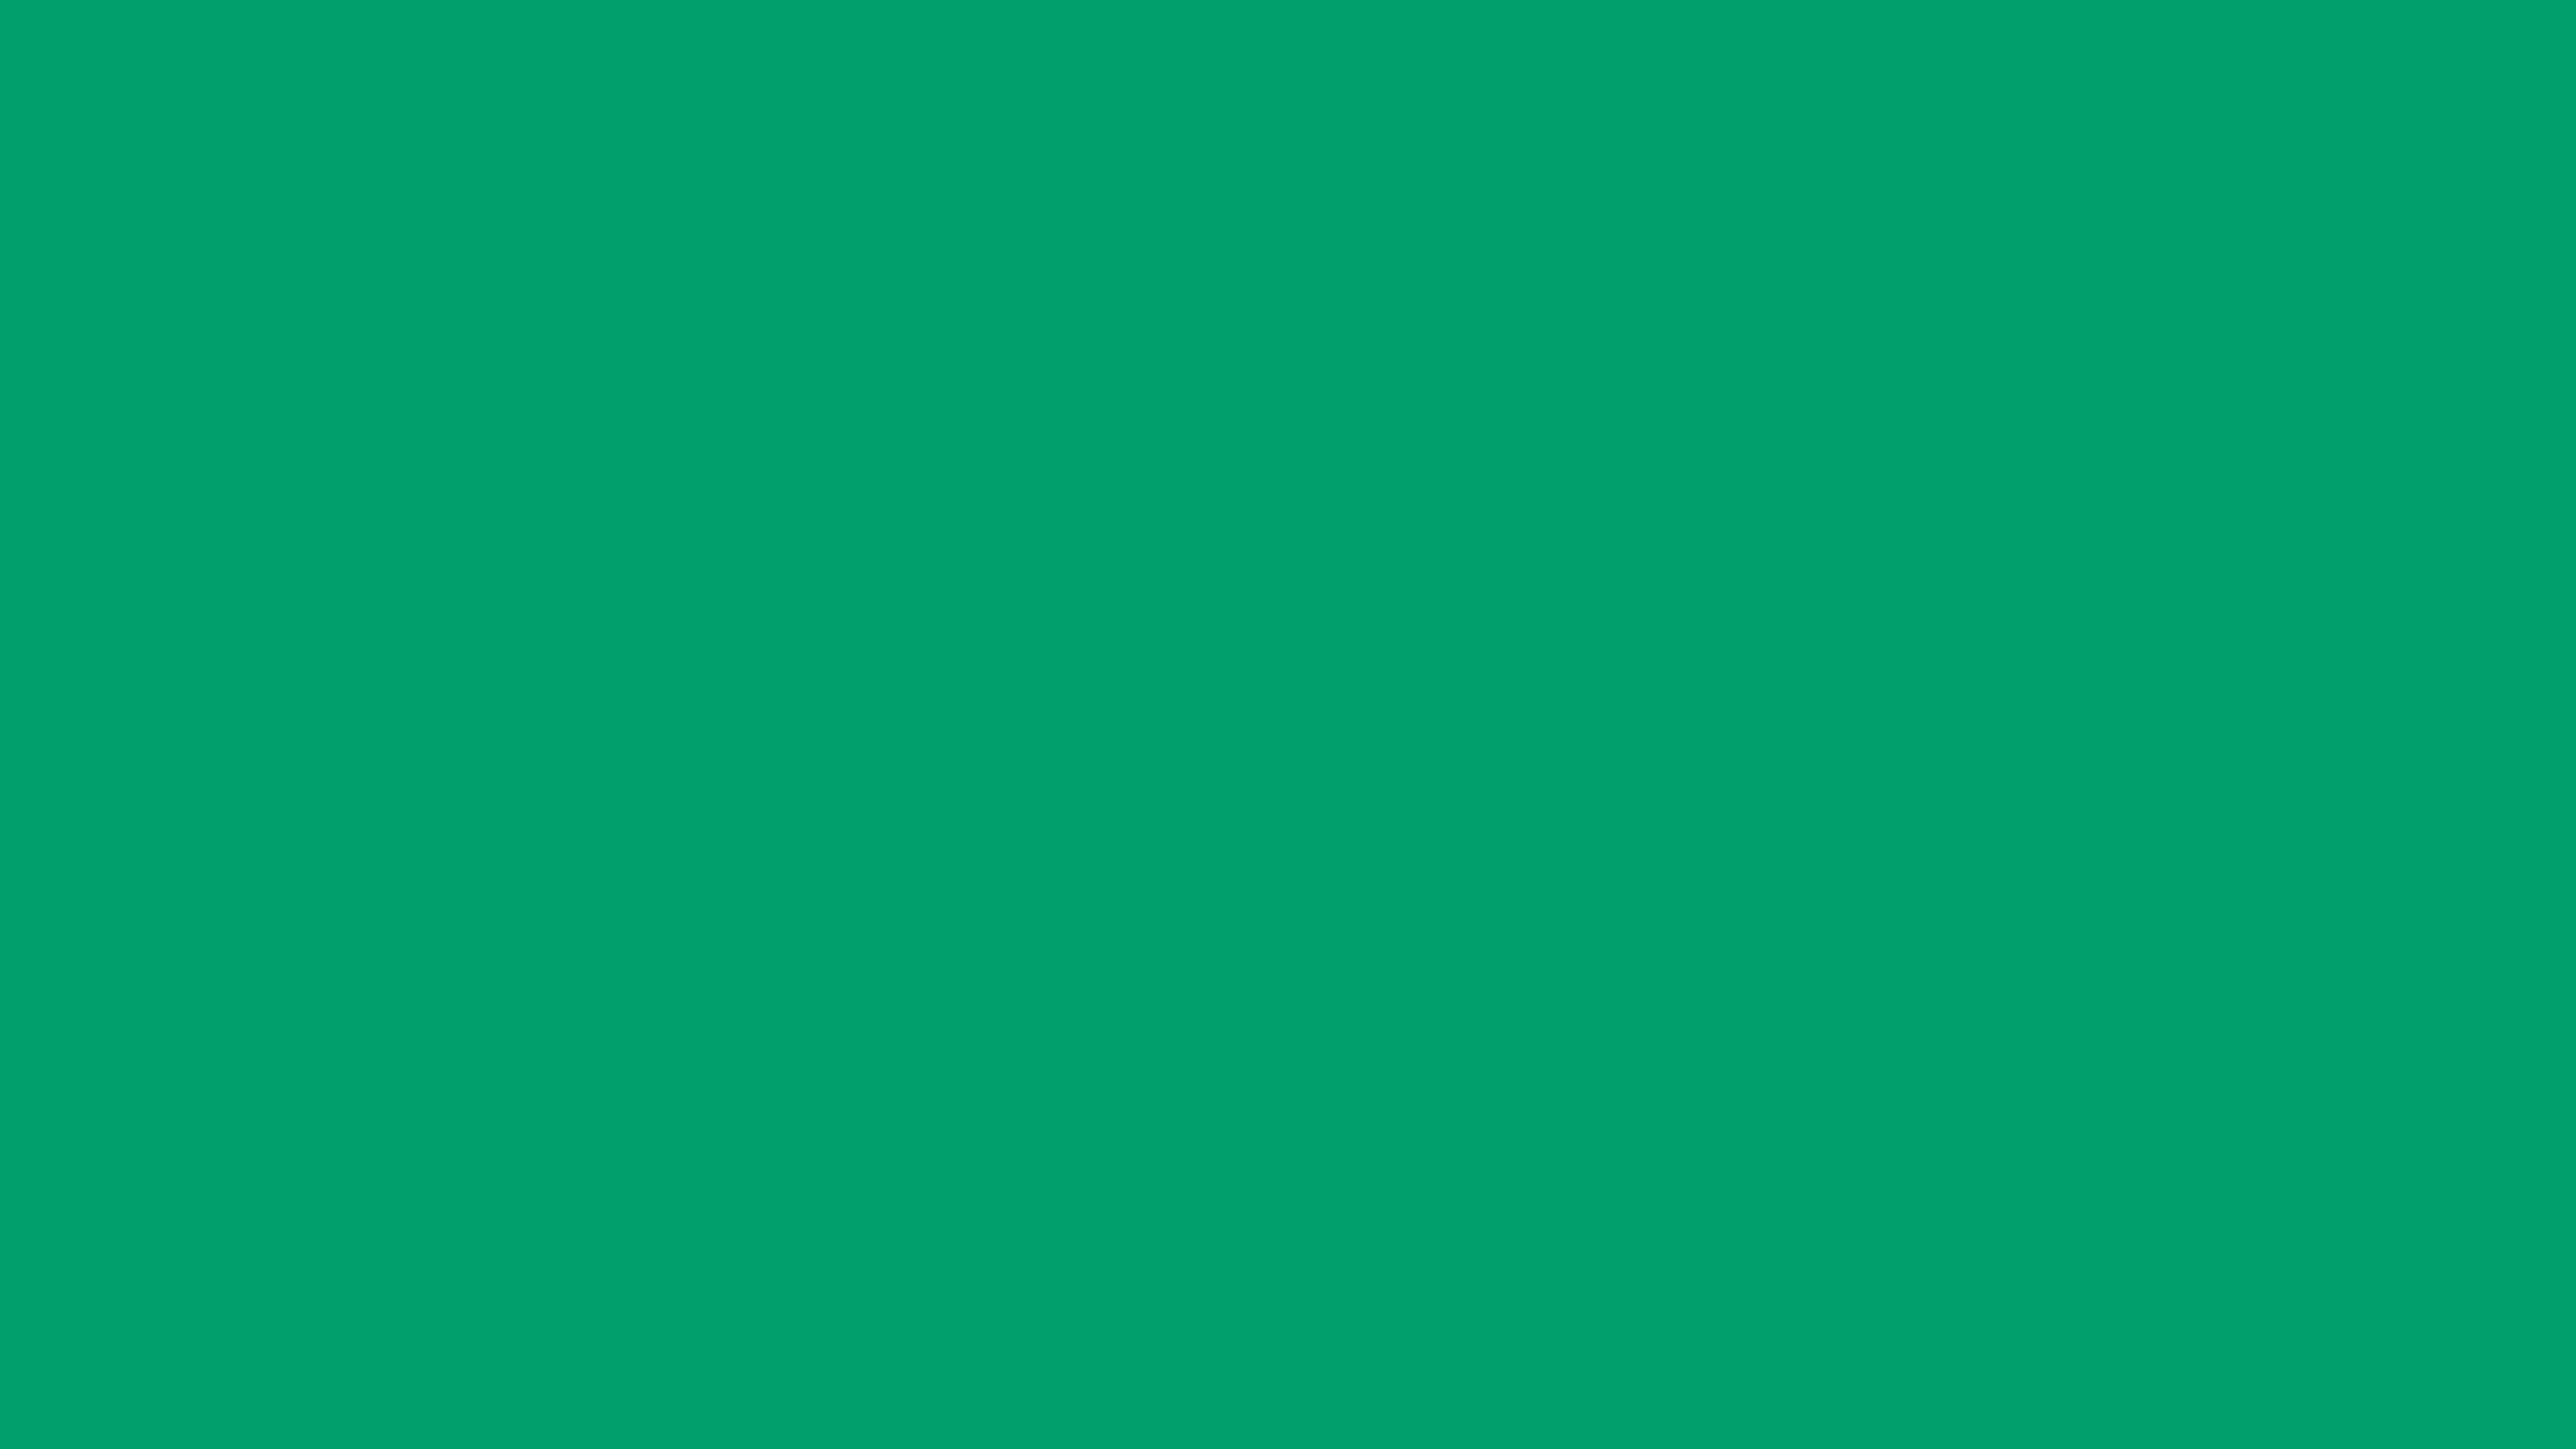 4096x2304 Green NCS Solid Color Background